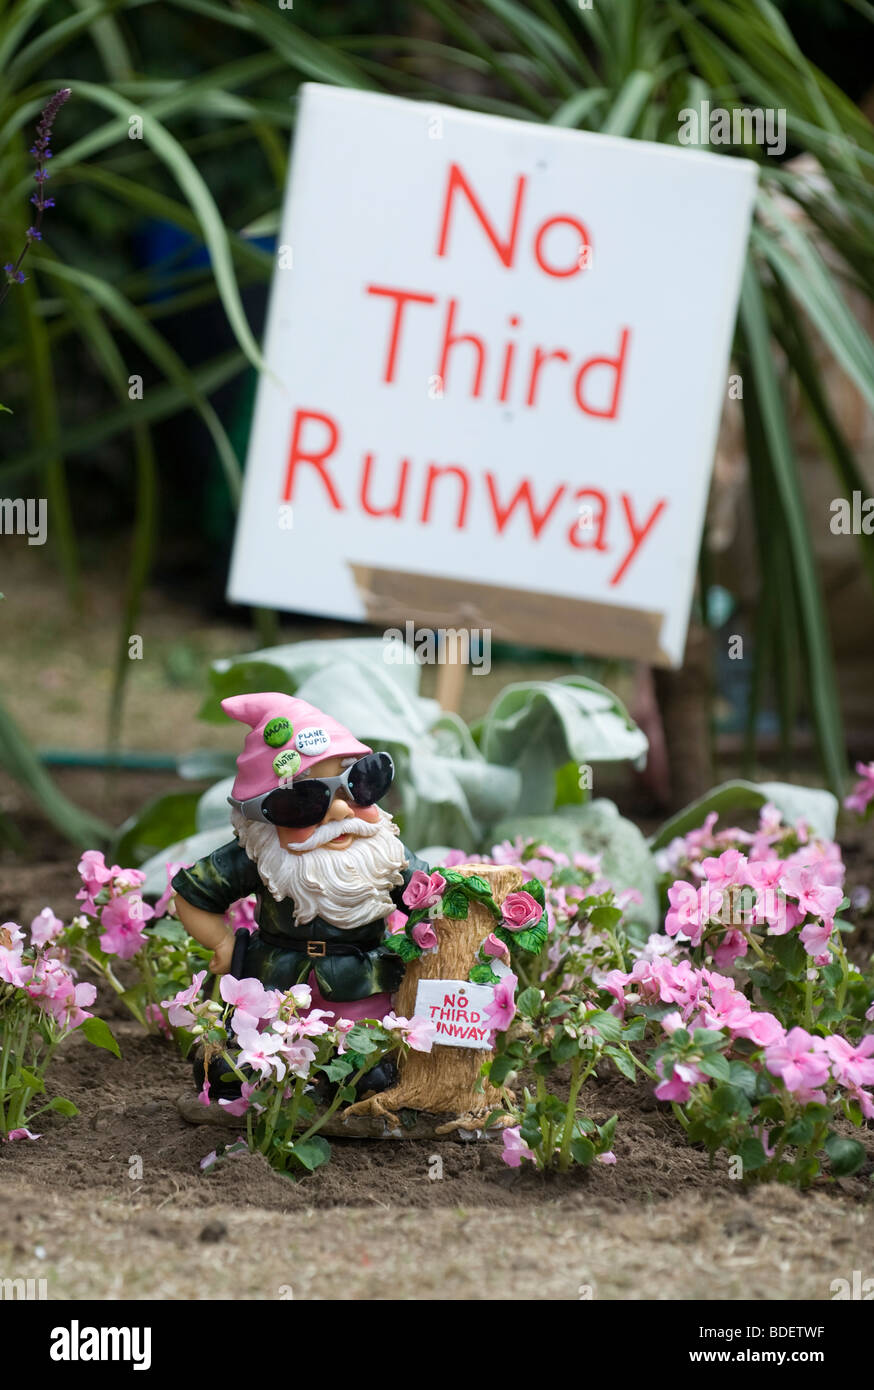 A protest garden against the third runway at Heathrow created with  discarded plants and flowers from the Chelsea - Stock Image